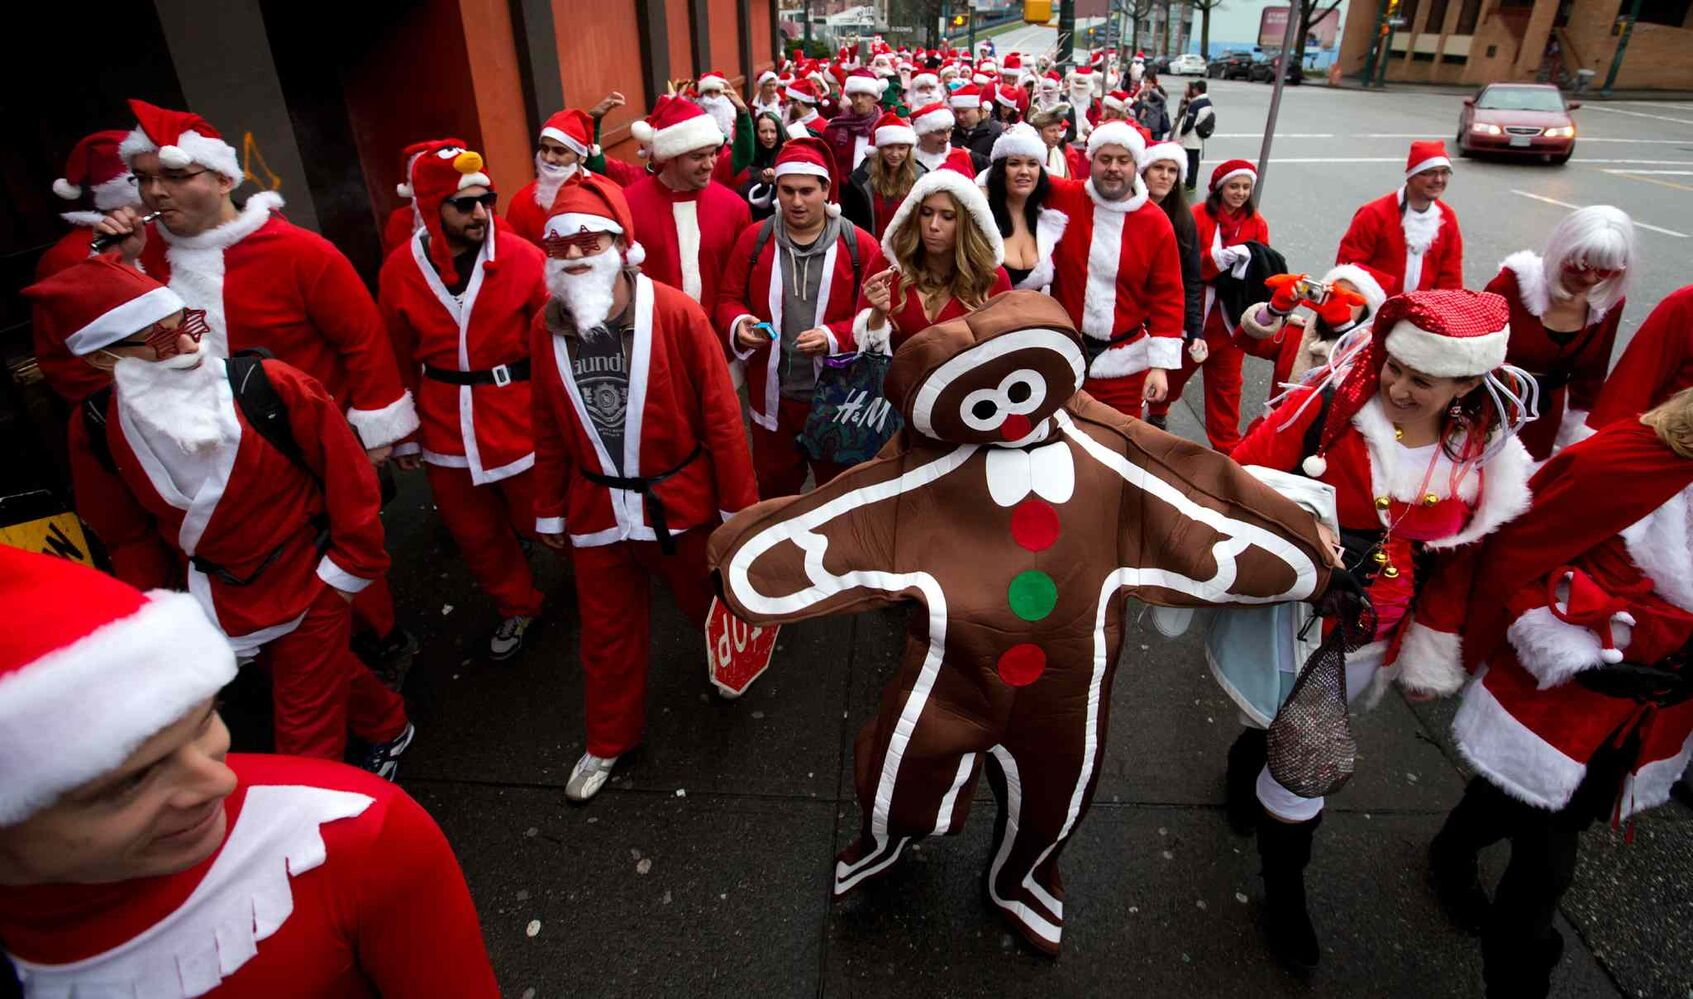 A man dressed as a gingerbread man wanders among hundreds of people dressed as Santa Claus to a pub on Main St. in Vancouver. (DARRYL DYCK / THE CANADIAN PRESS)